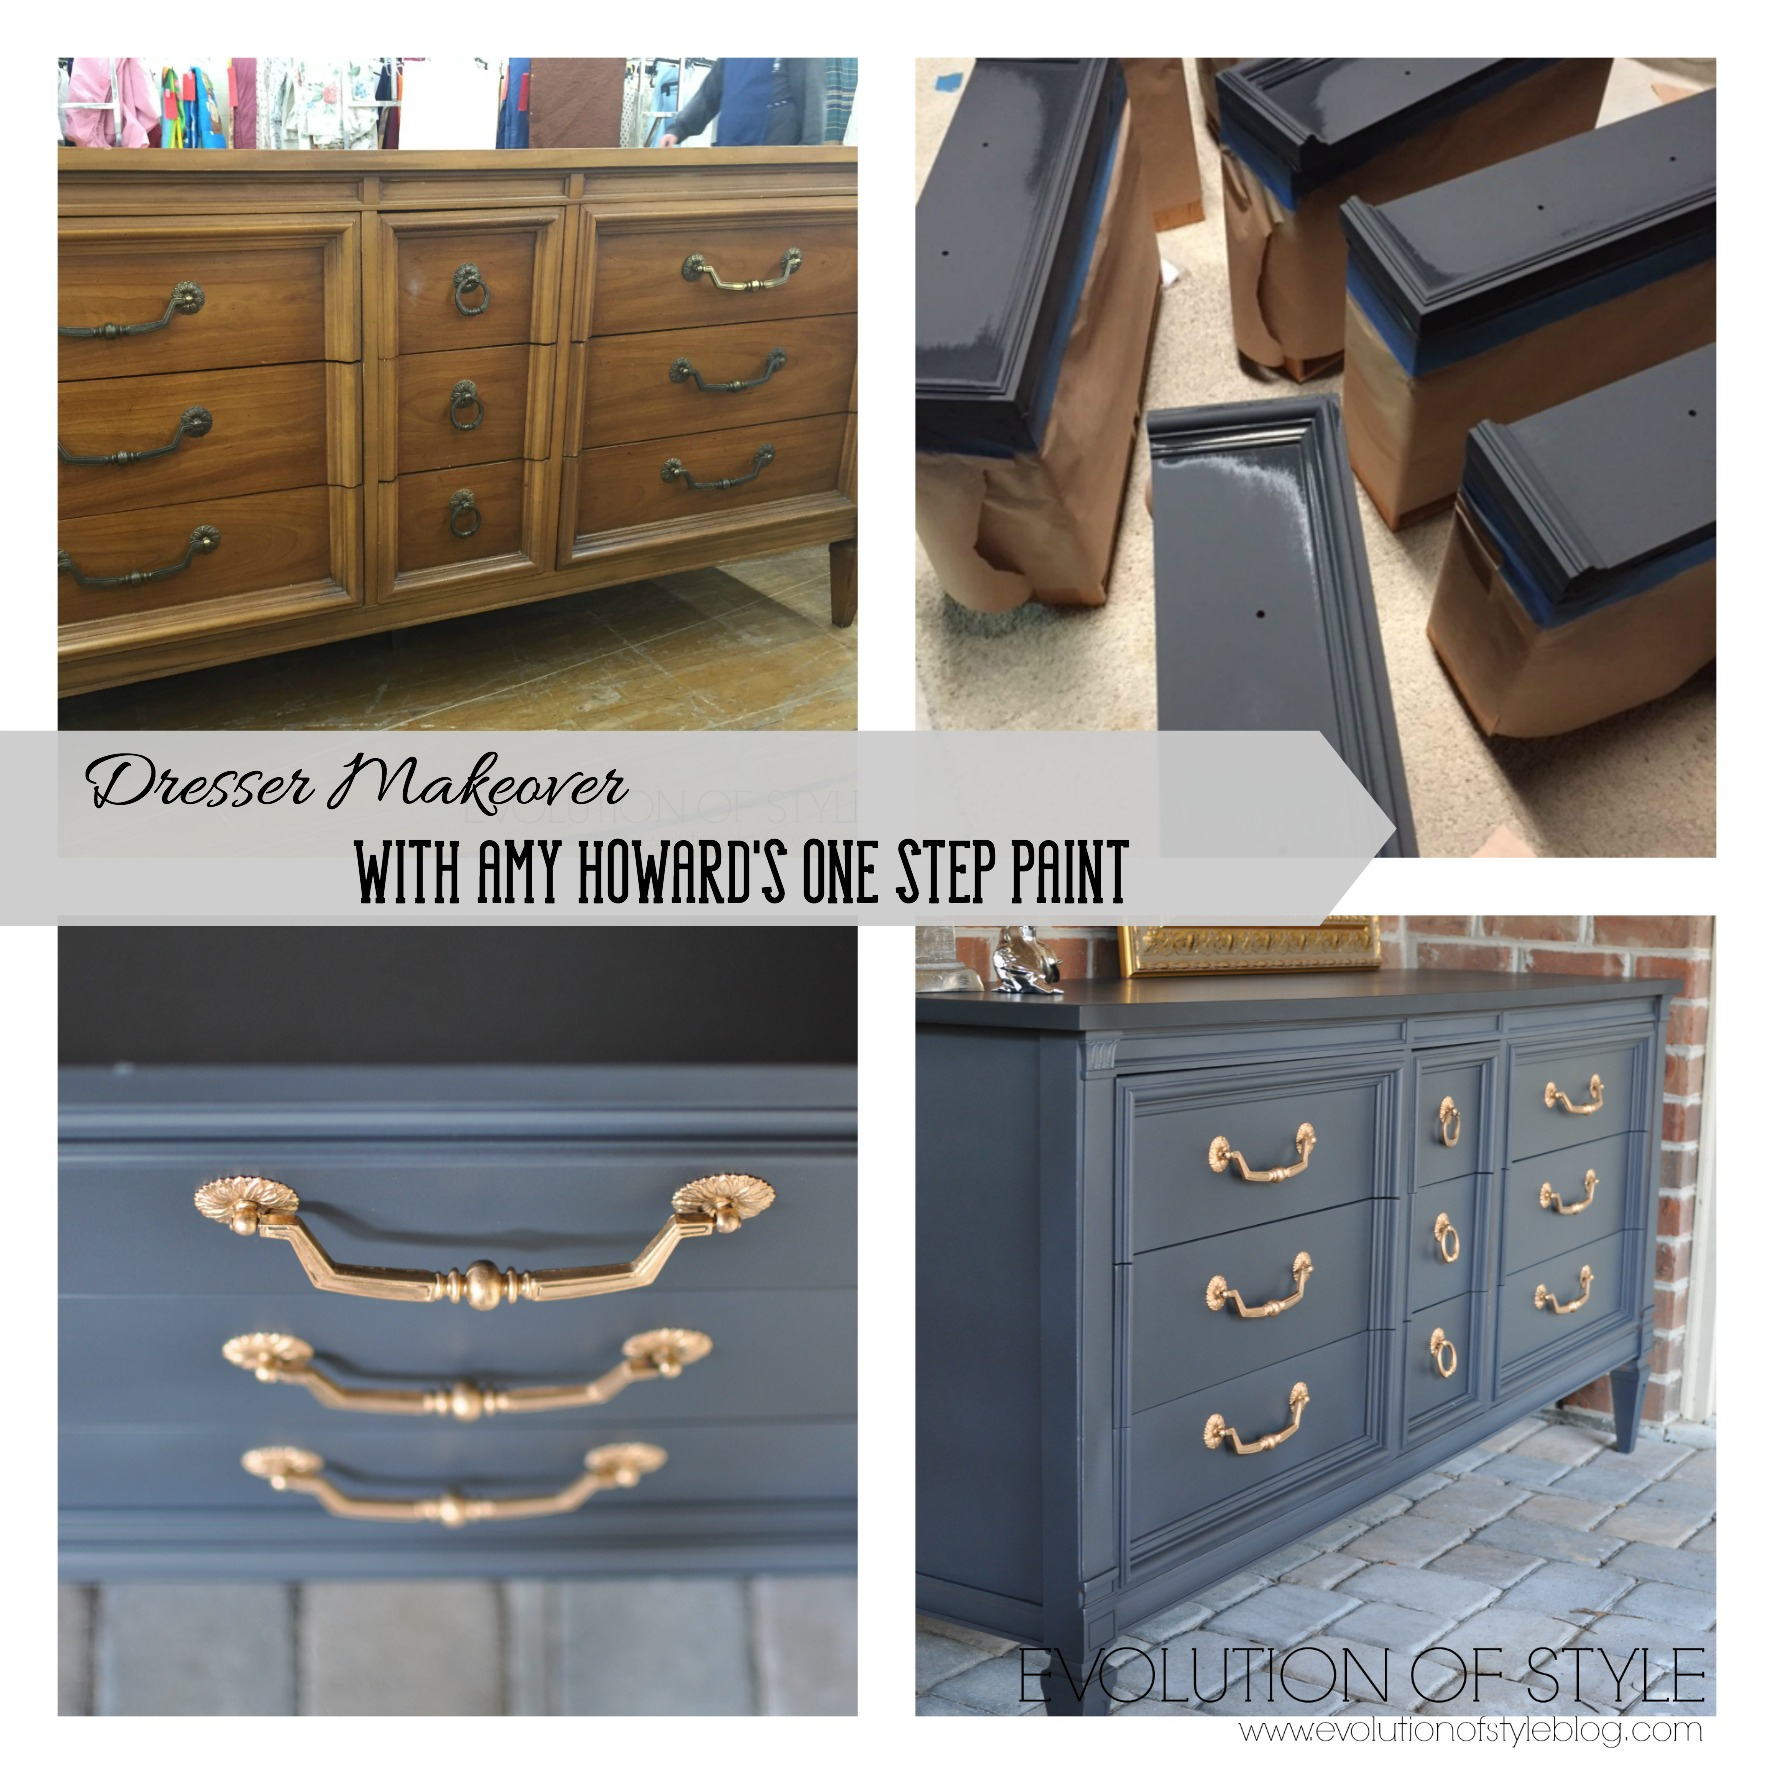 Dresser transformed with amy howard 39 s one step paint for Amy howard paint kitchen cabinets